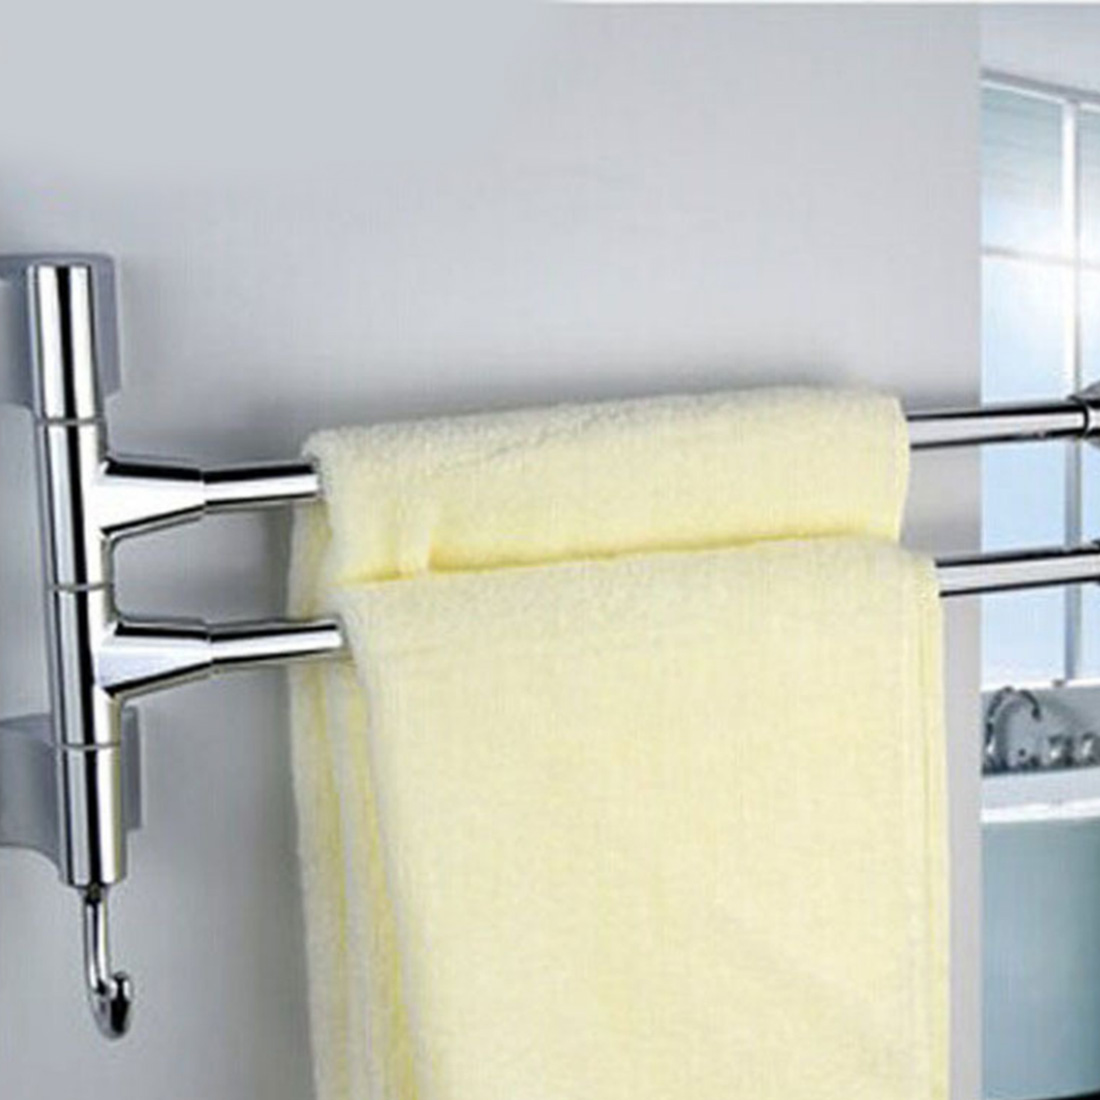 Bathroom Kitchen Towel Stainless Steel 2 3 4 Layers Shower